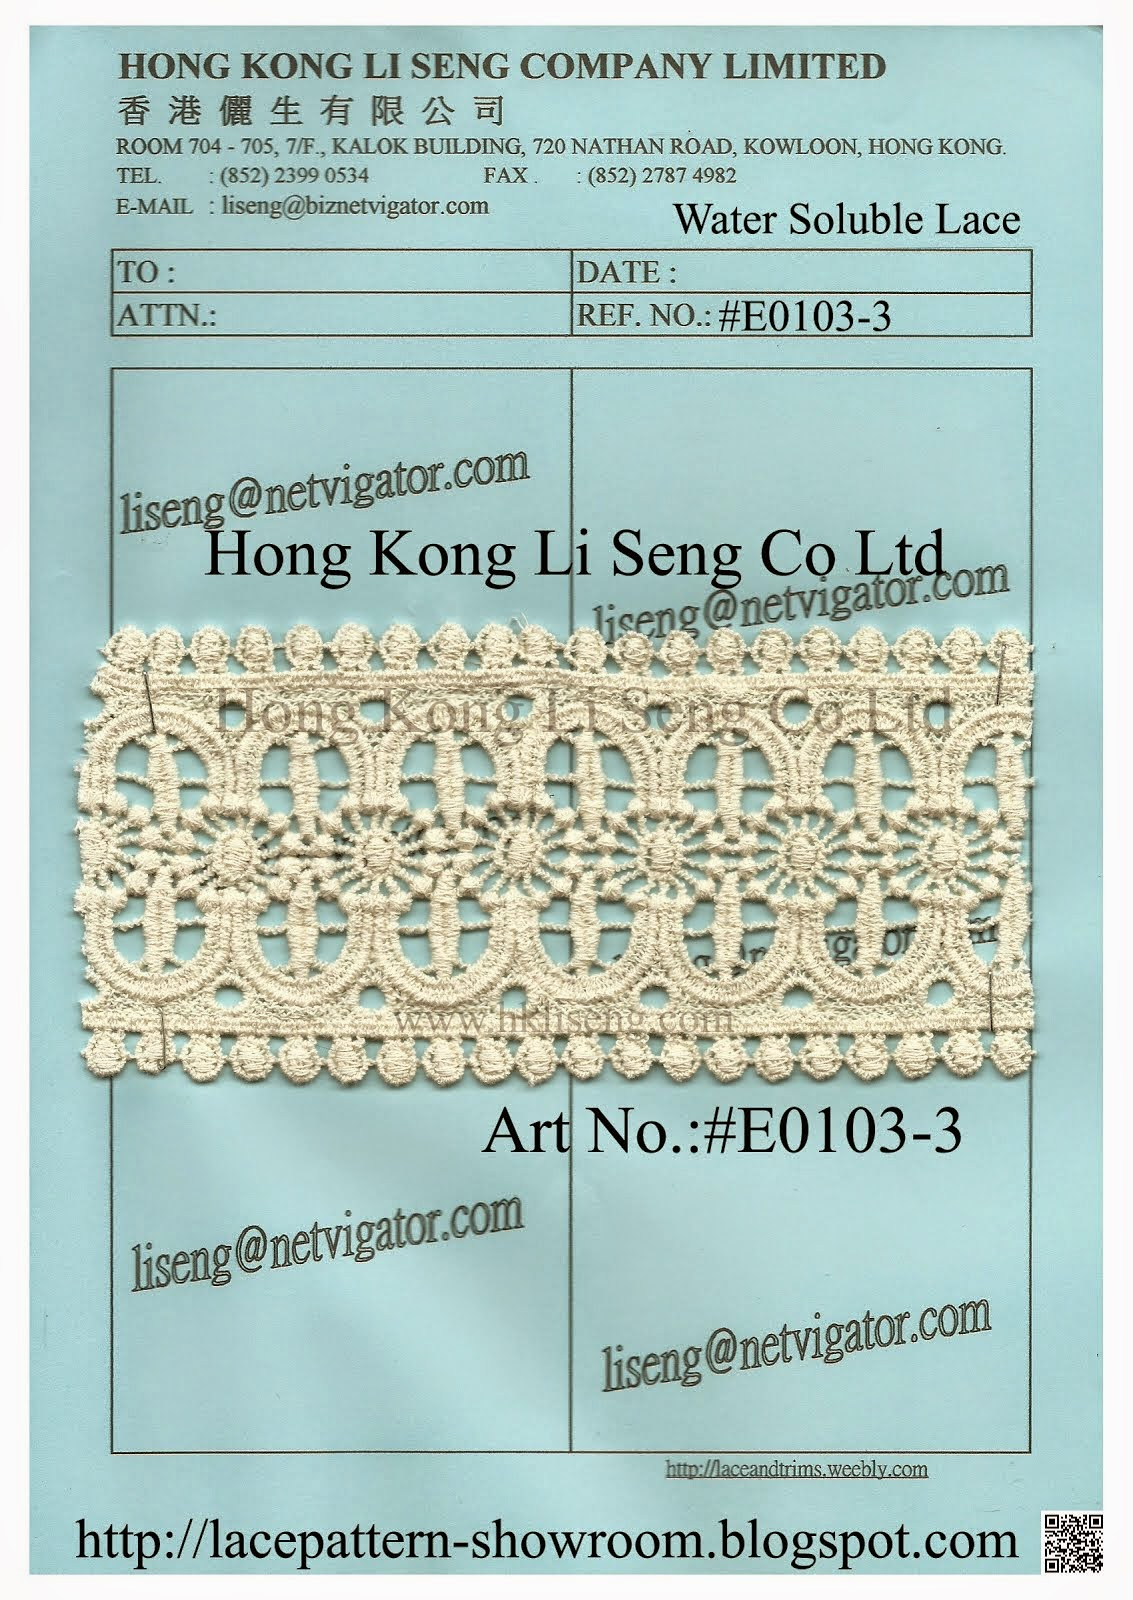 Embroidered Cotton Lace Trimming Wholesaler - Hong Kong Li Seng Co Ltd